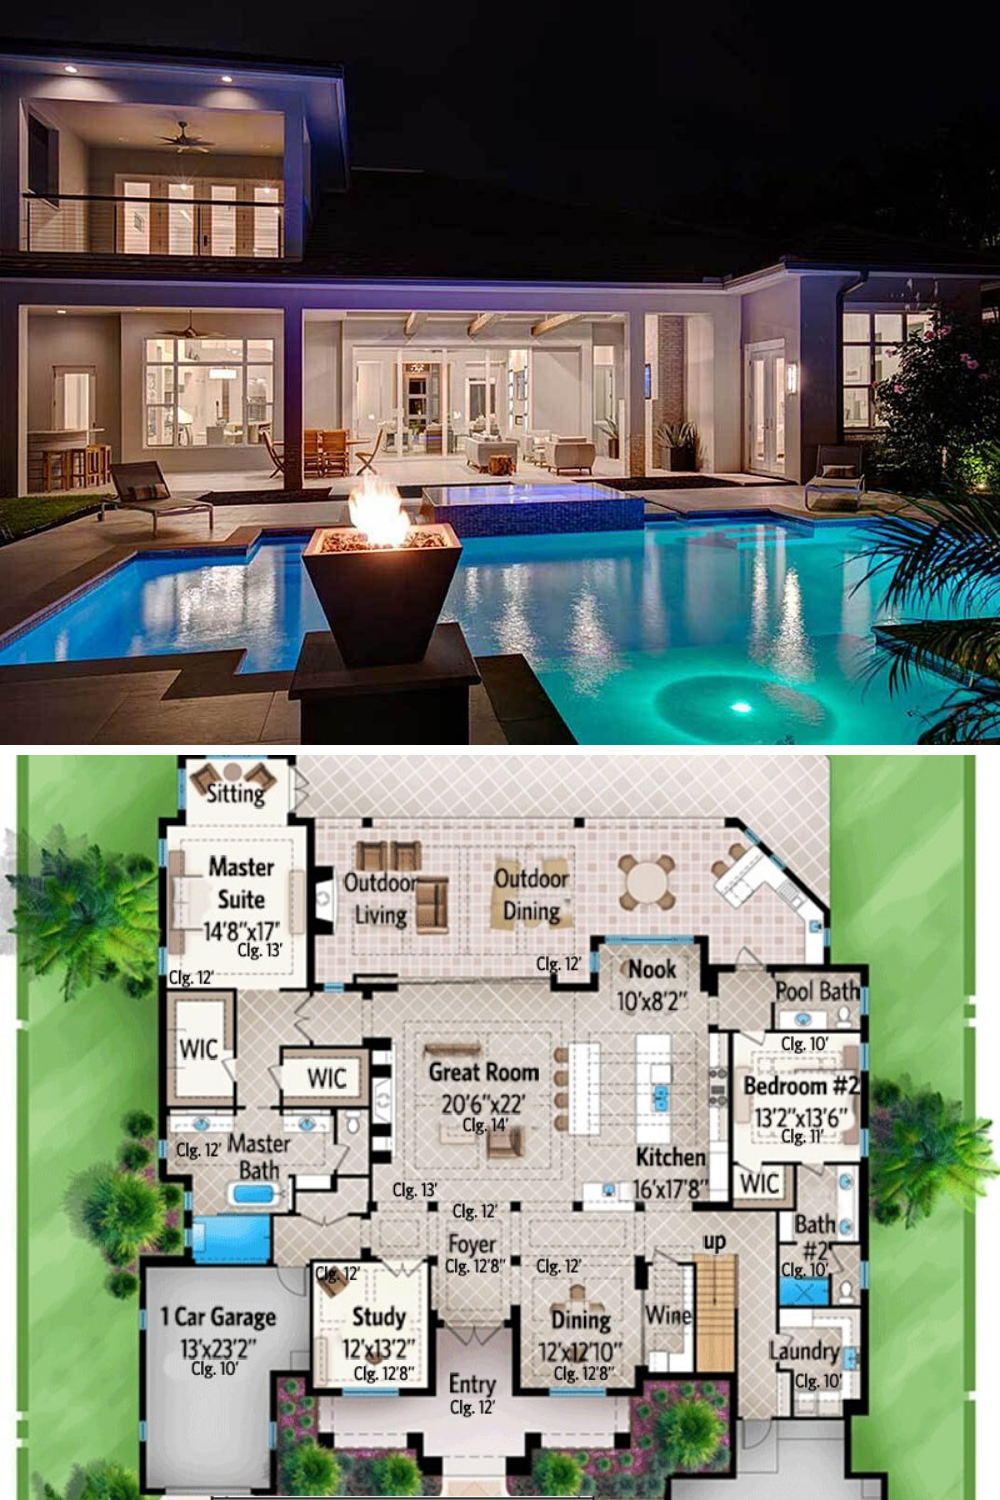 4 Bedroom Two Story Florida Home With Rec Room Floor Plan In 2020 Florida House Plans Pool House Plans Luxury Floor Plans